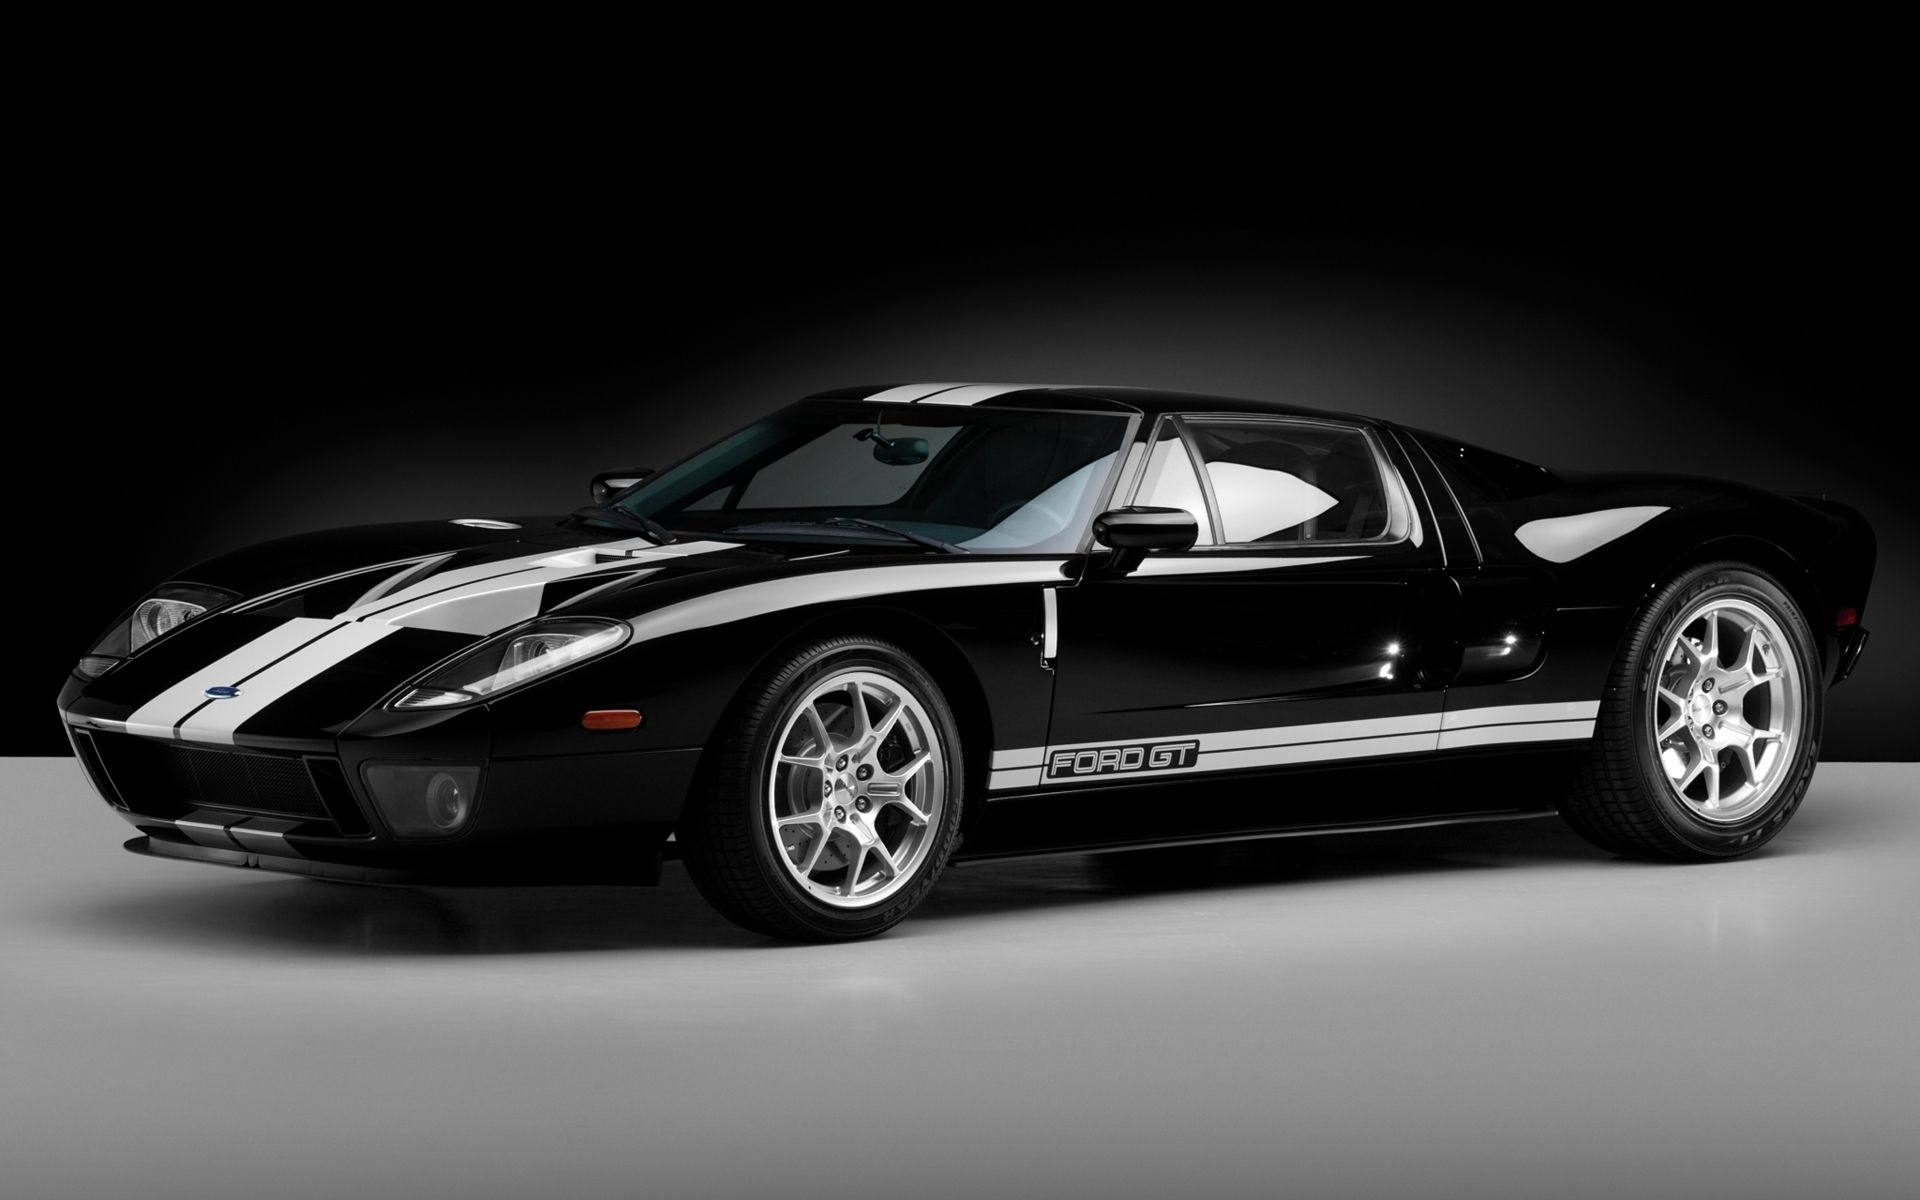 Ford Gt Supercar Sports Car Basement 1080x2160 Wallpaper Ford